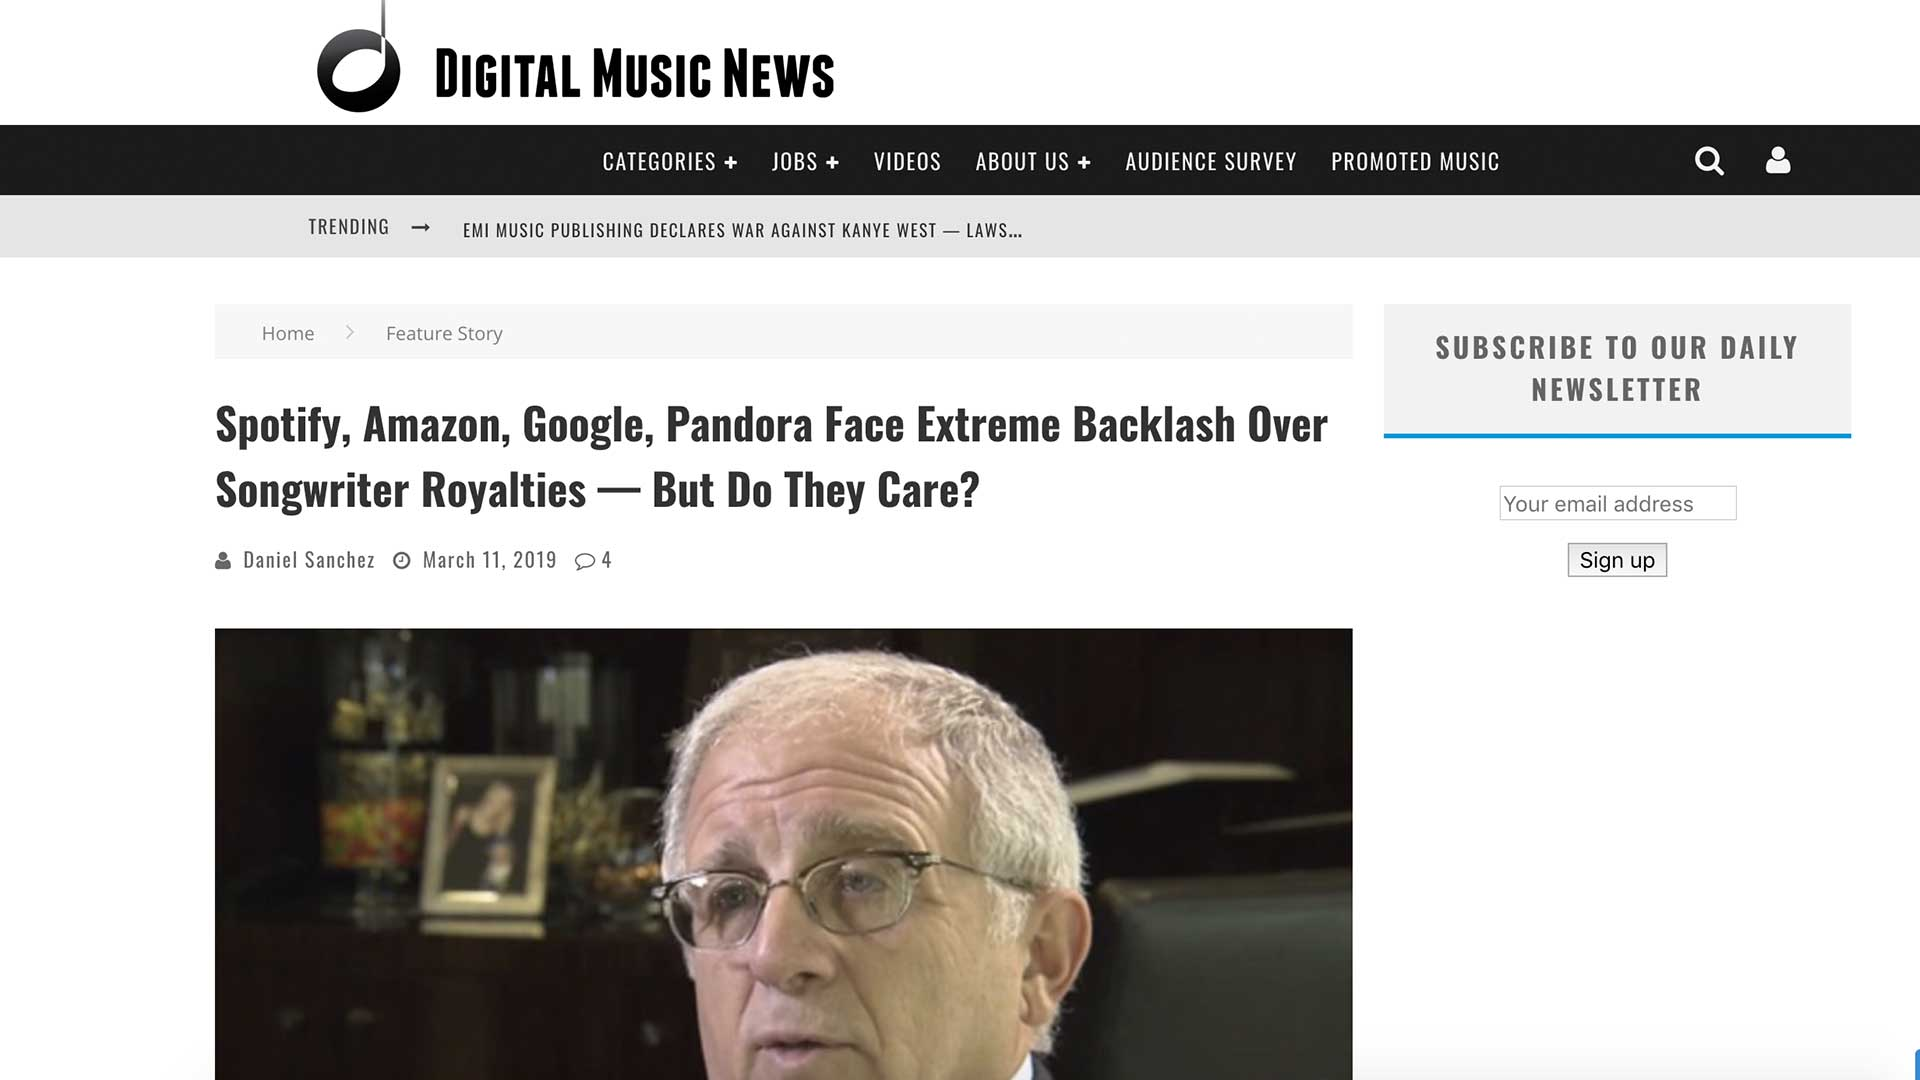 Fairness Rocks News Spotify, Amazon, Google, Pandora Face Extreme Backlash Over Songwriter Royalties — But Do They Care?